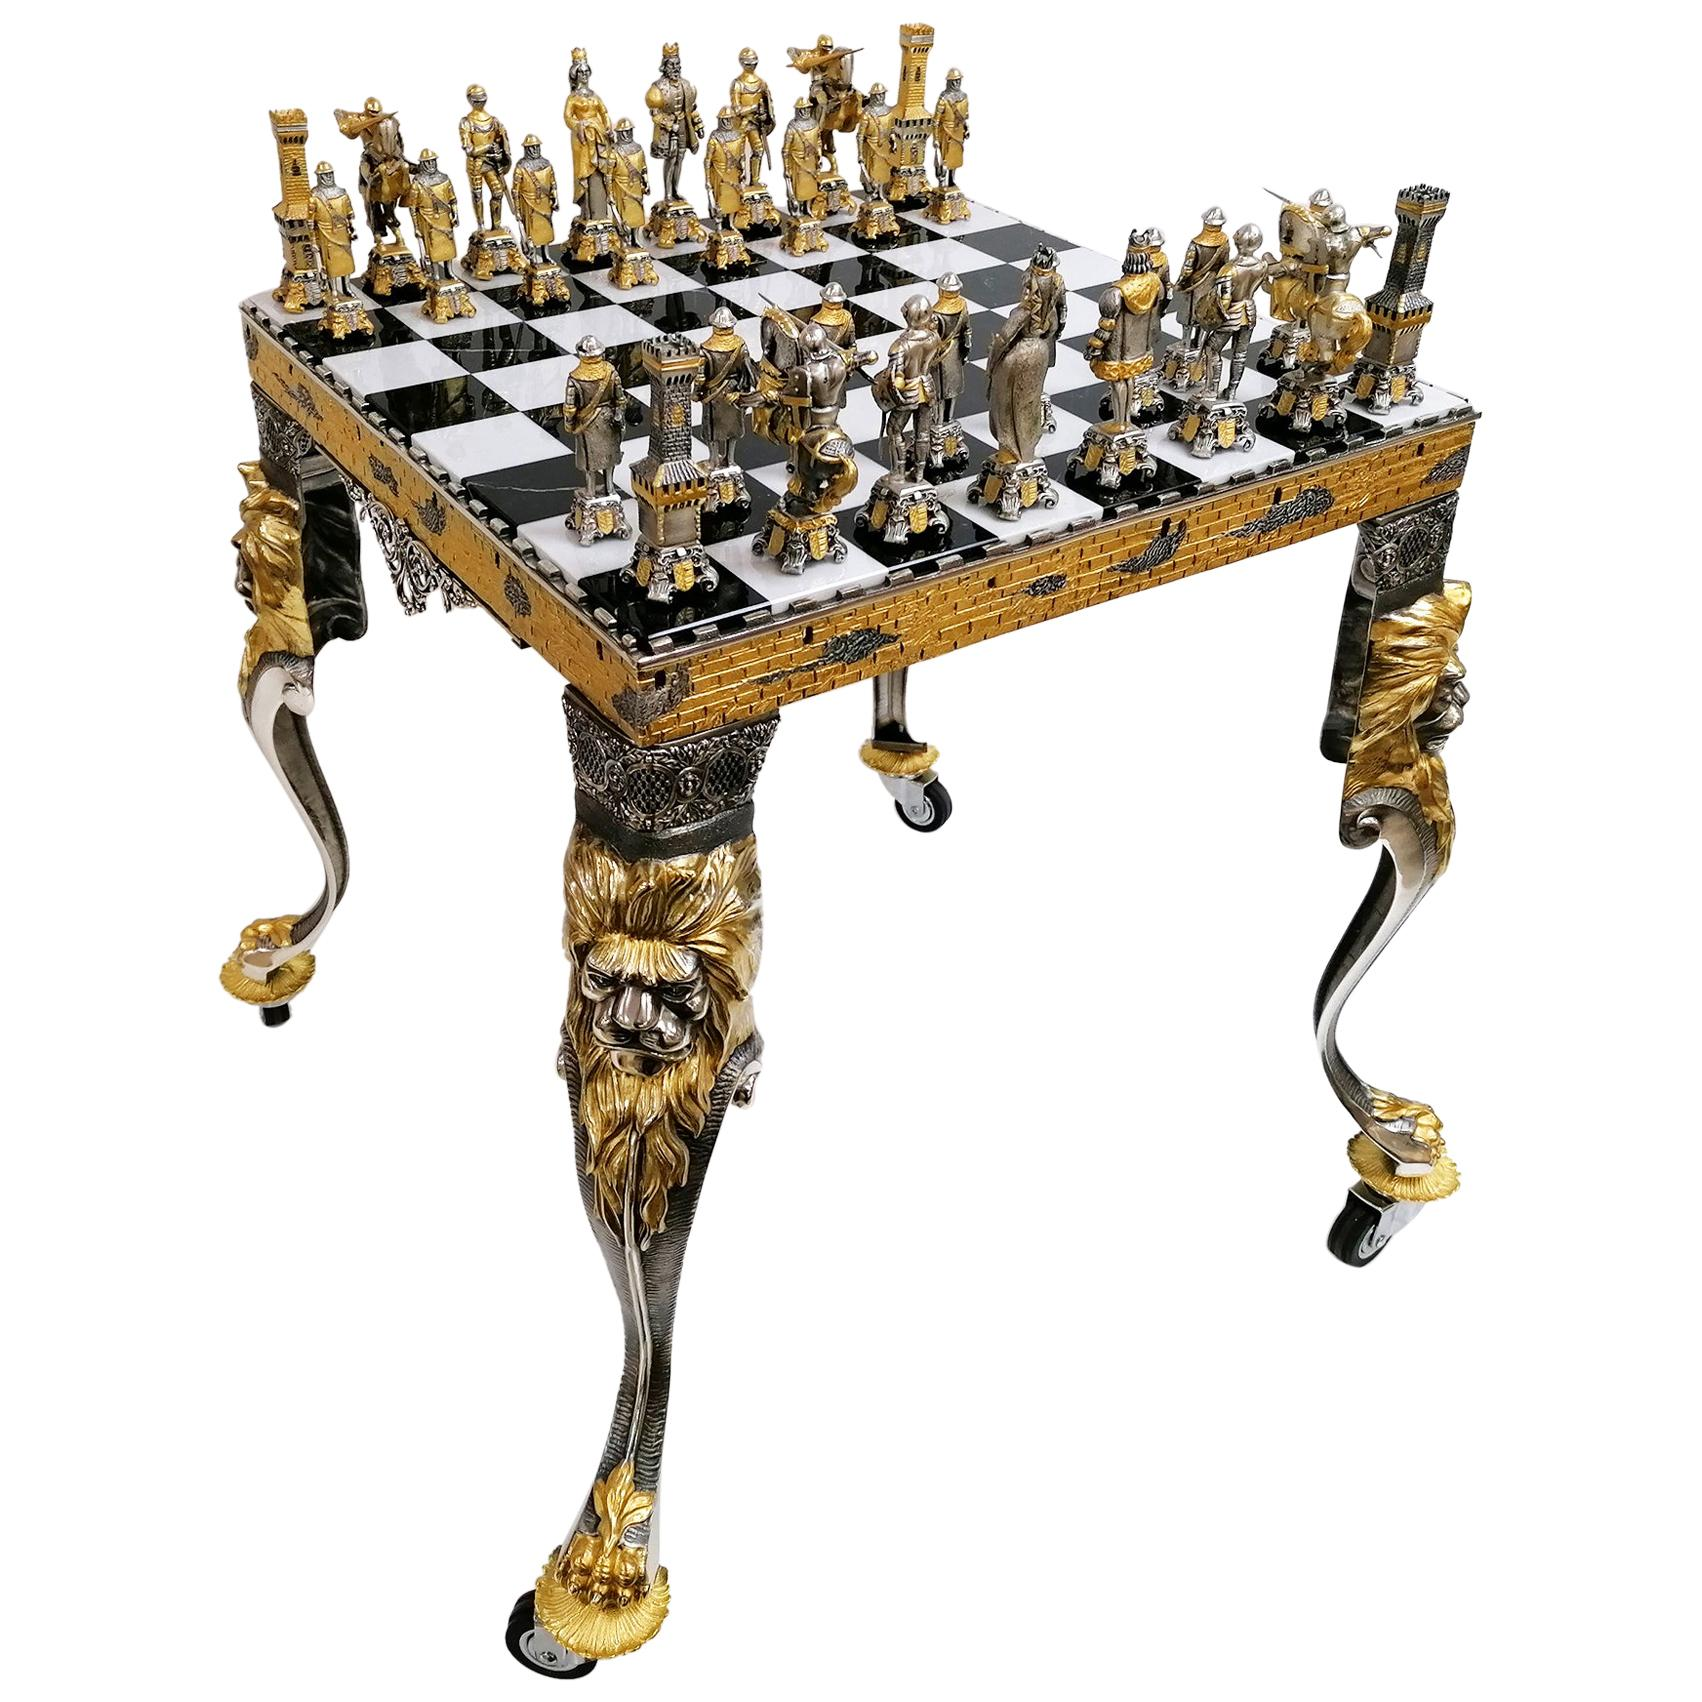 20th Century Italian Table, Chess Board with Chess Game